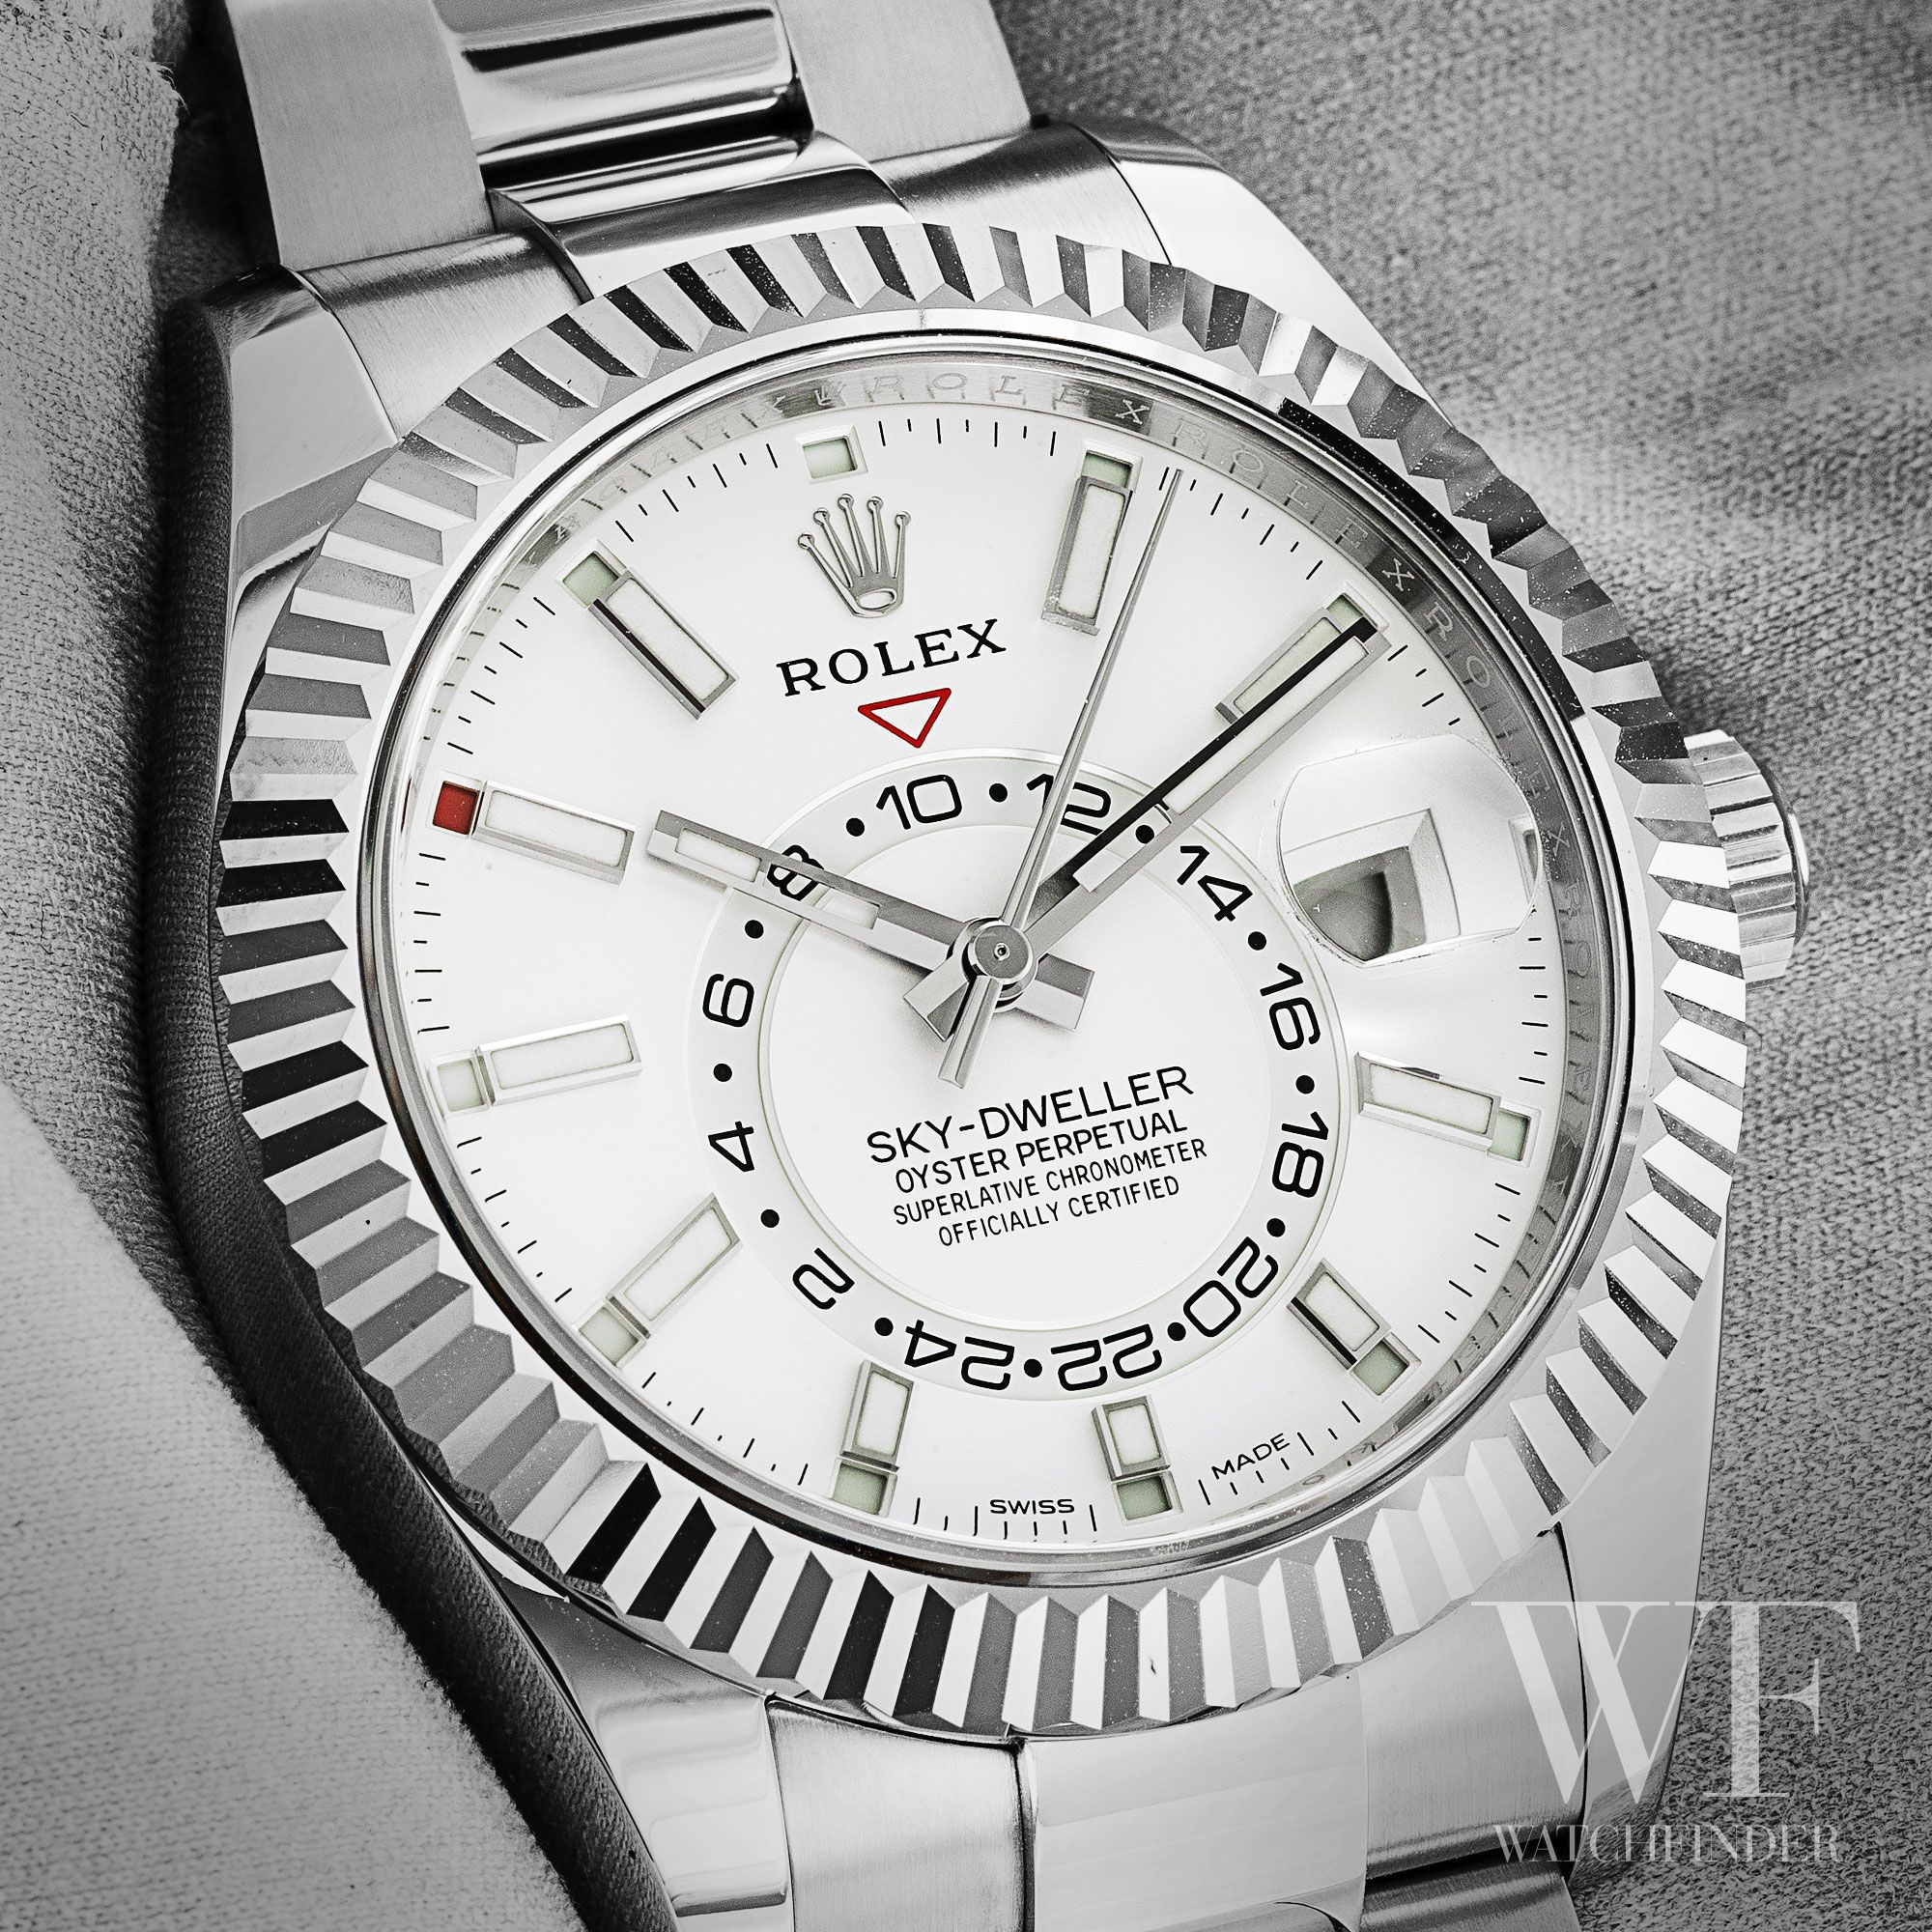 When Rolex Released The Sky Dweller In 2012 It Was A Completely New